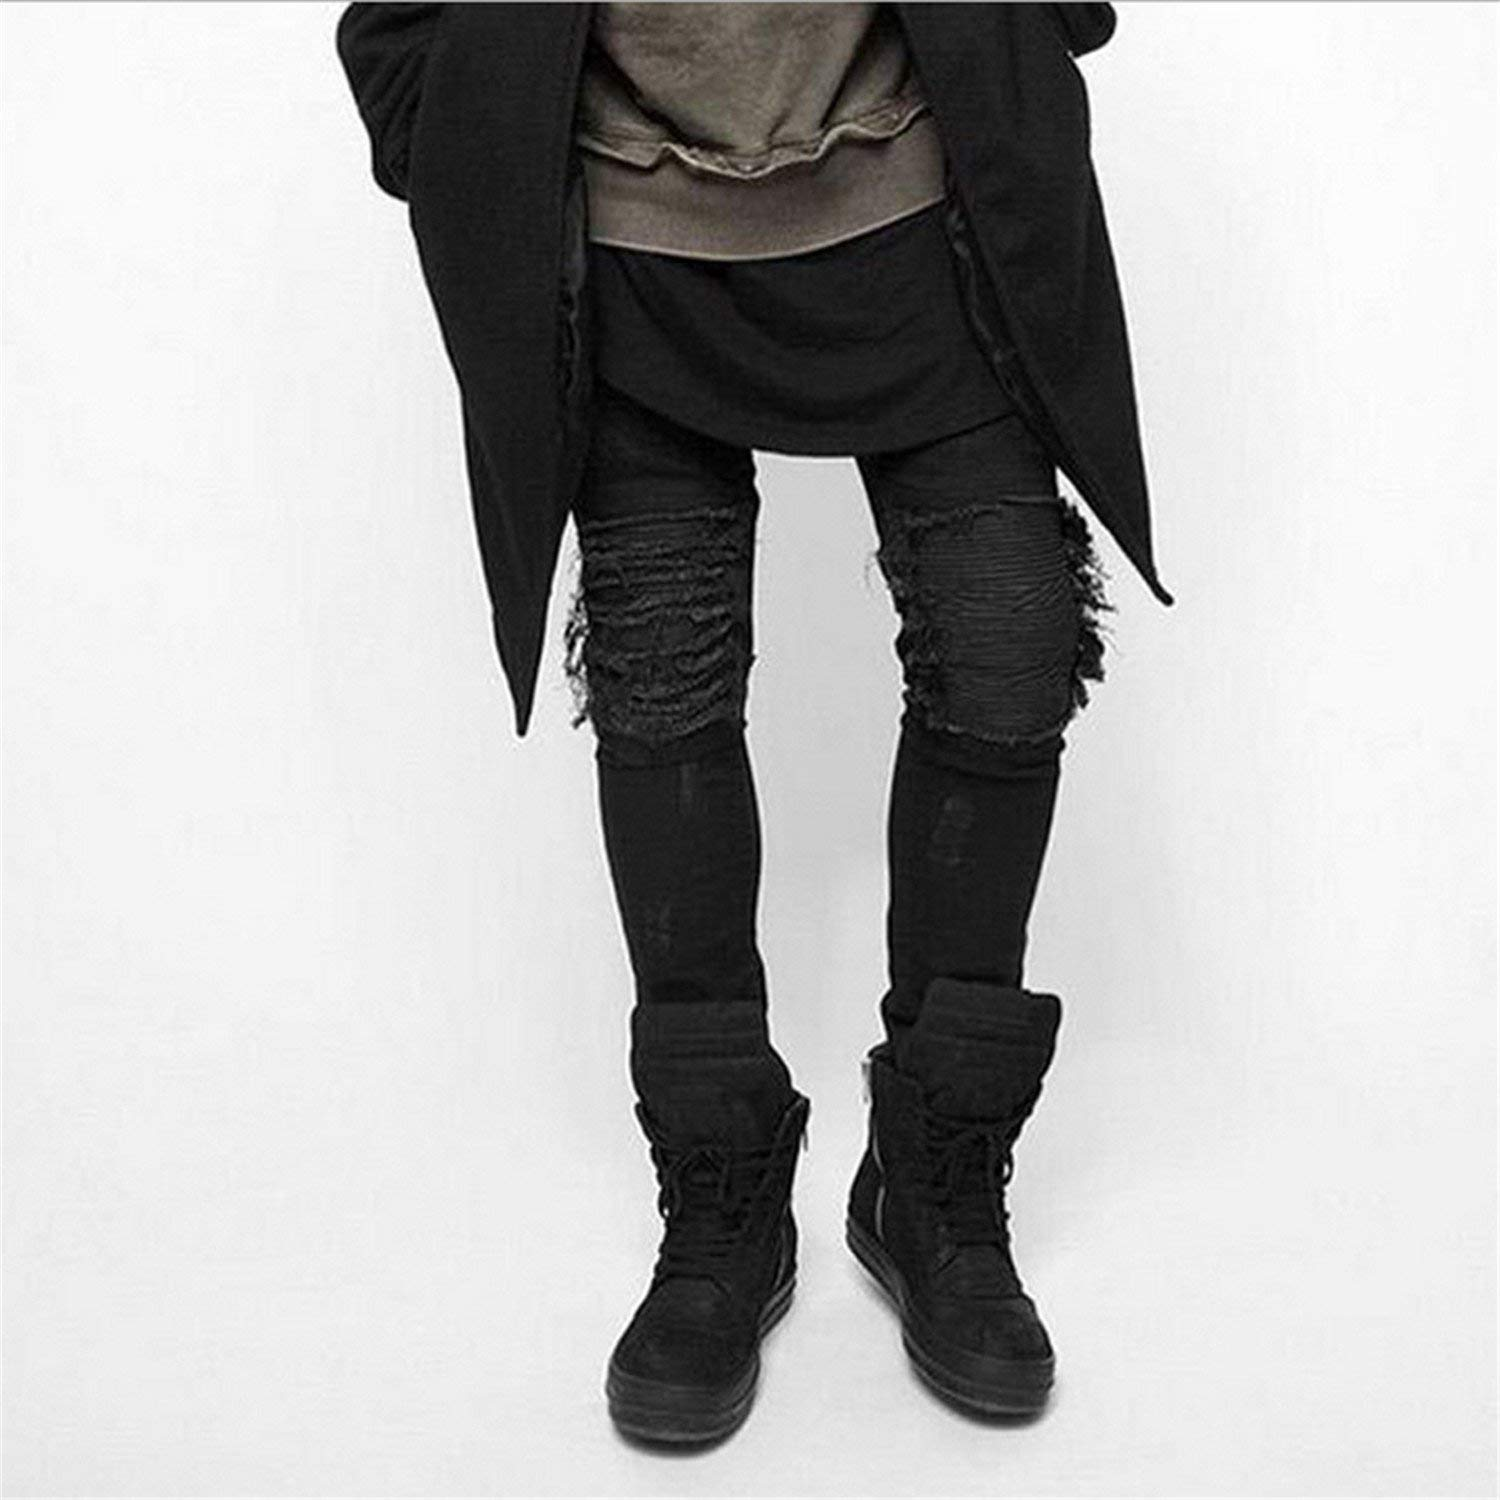 3f48aa938 Get Quotations · Chiffoned Skinny Jeans Men Ripped Slim Stretch Hole  Distressed Mens Biker Jeans Medium Wash Hip Hop